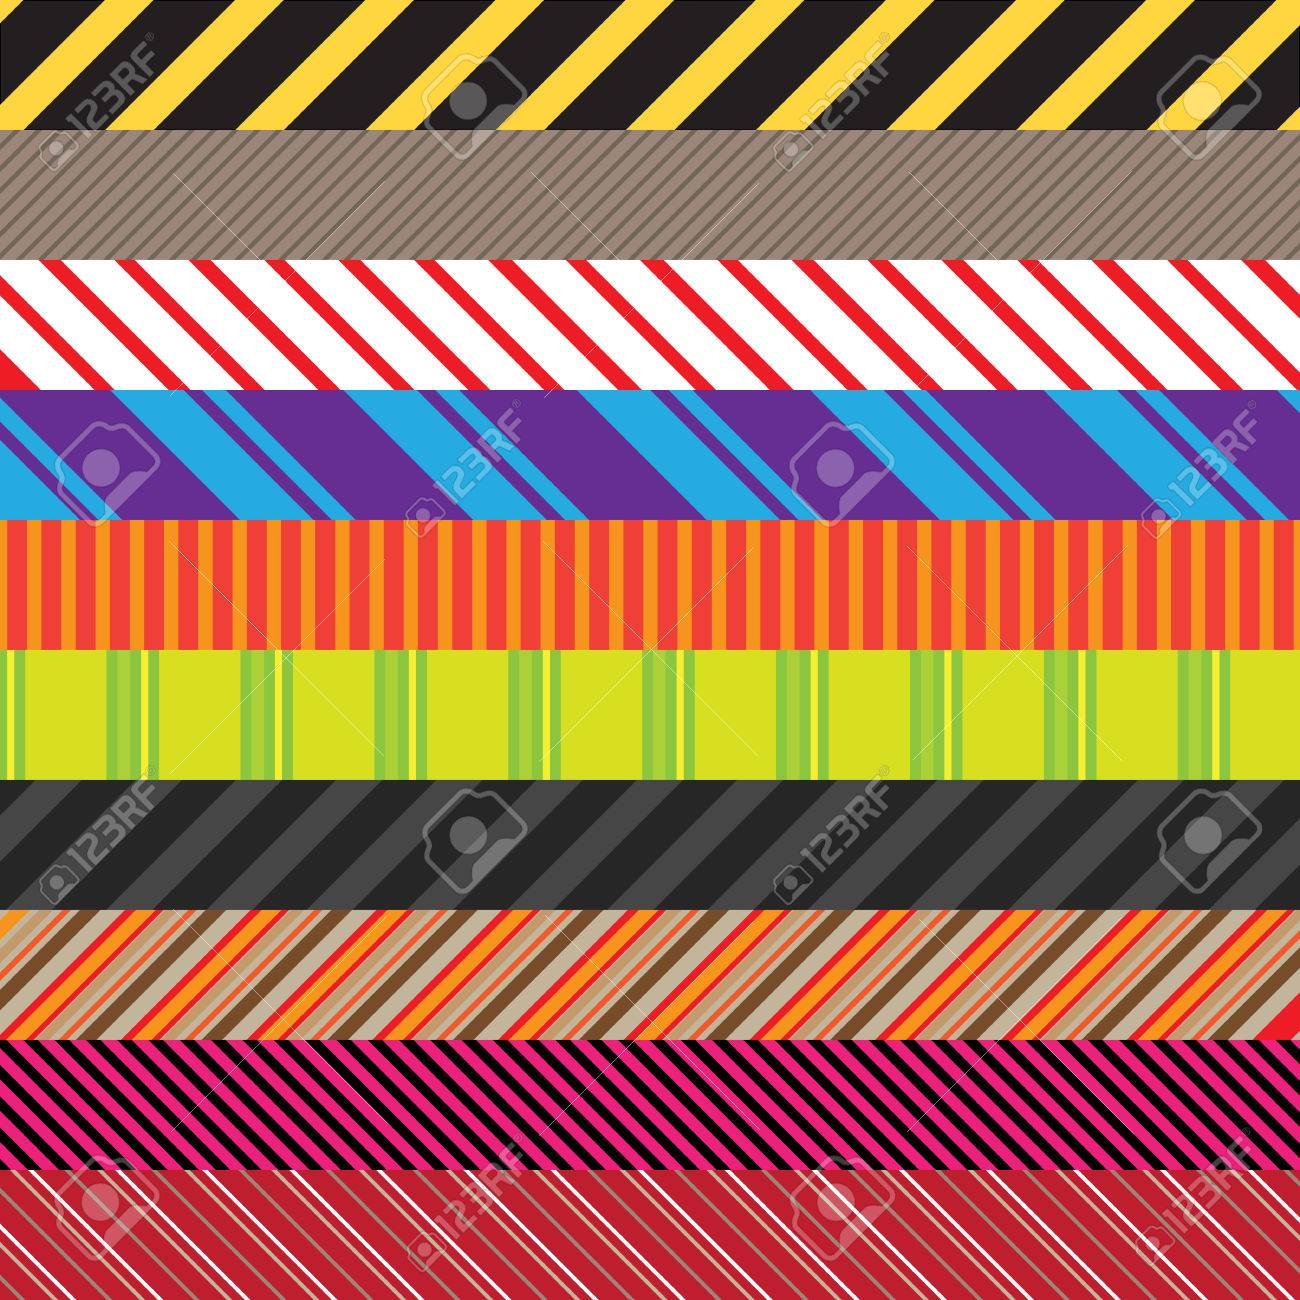 Stripes patterns in an assortment of colors and styles.  Easily use these to create seamless backgrounds or use them in other elements. Stock Vector - 5621524